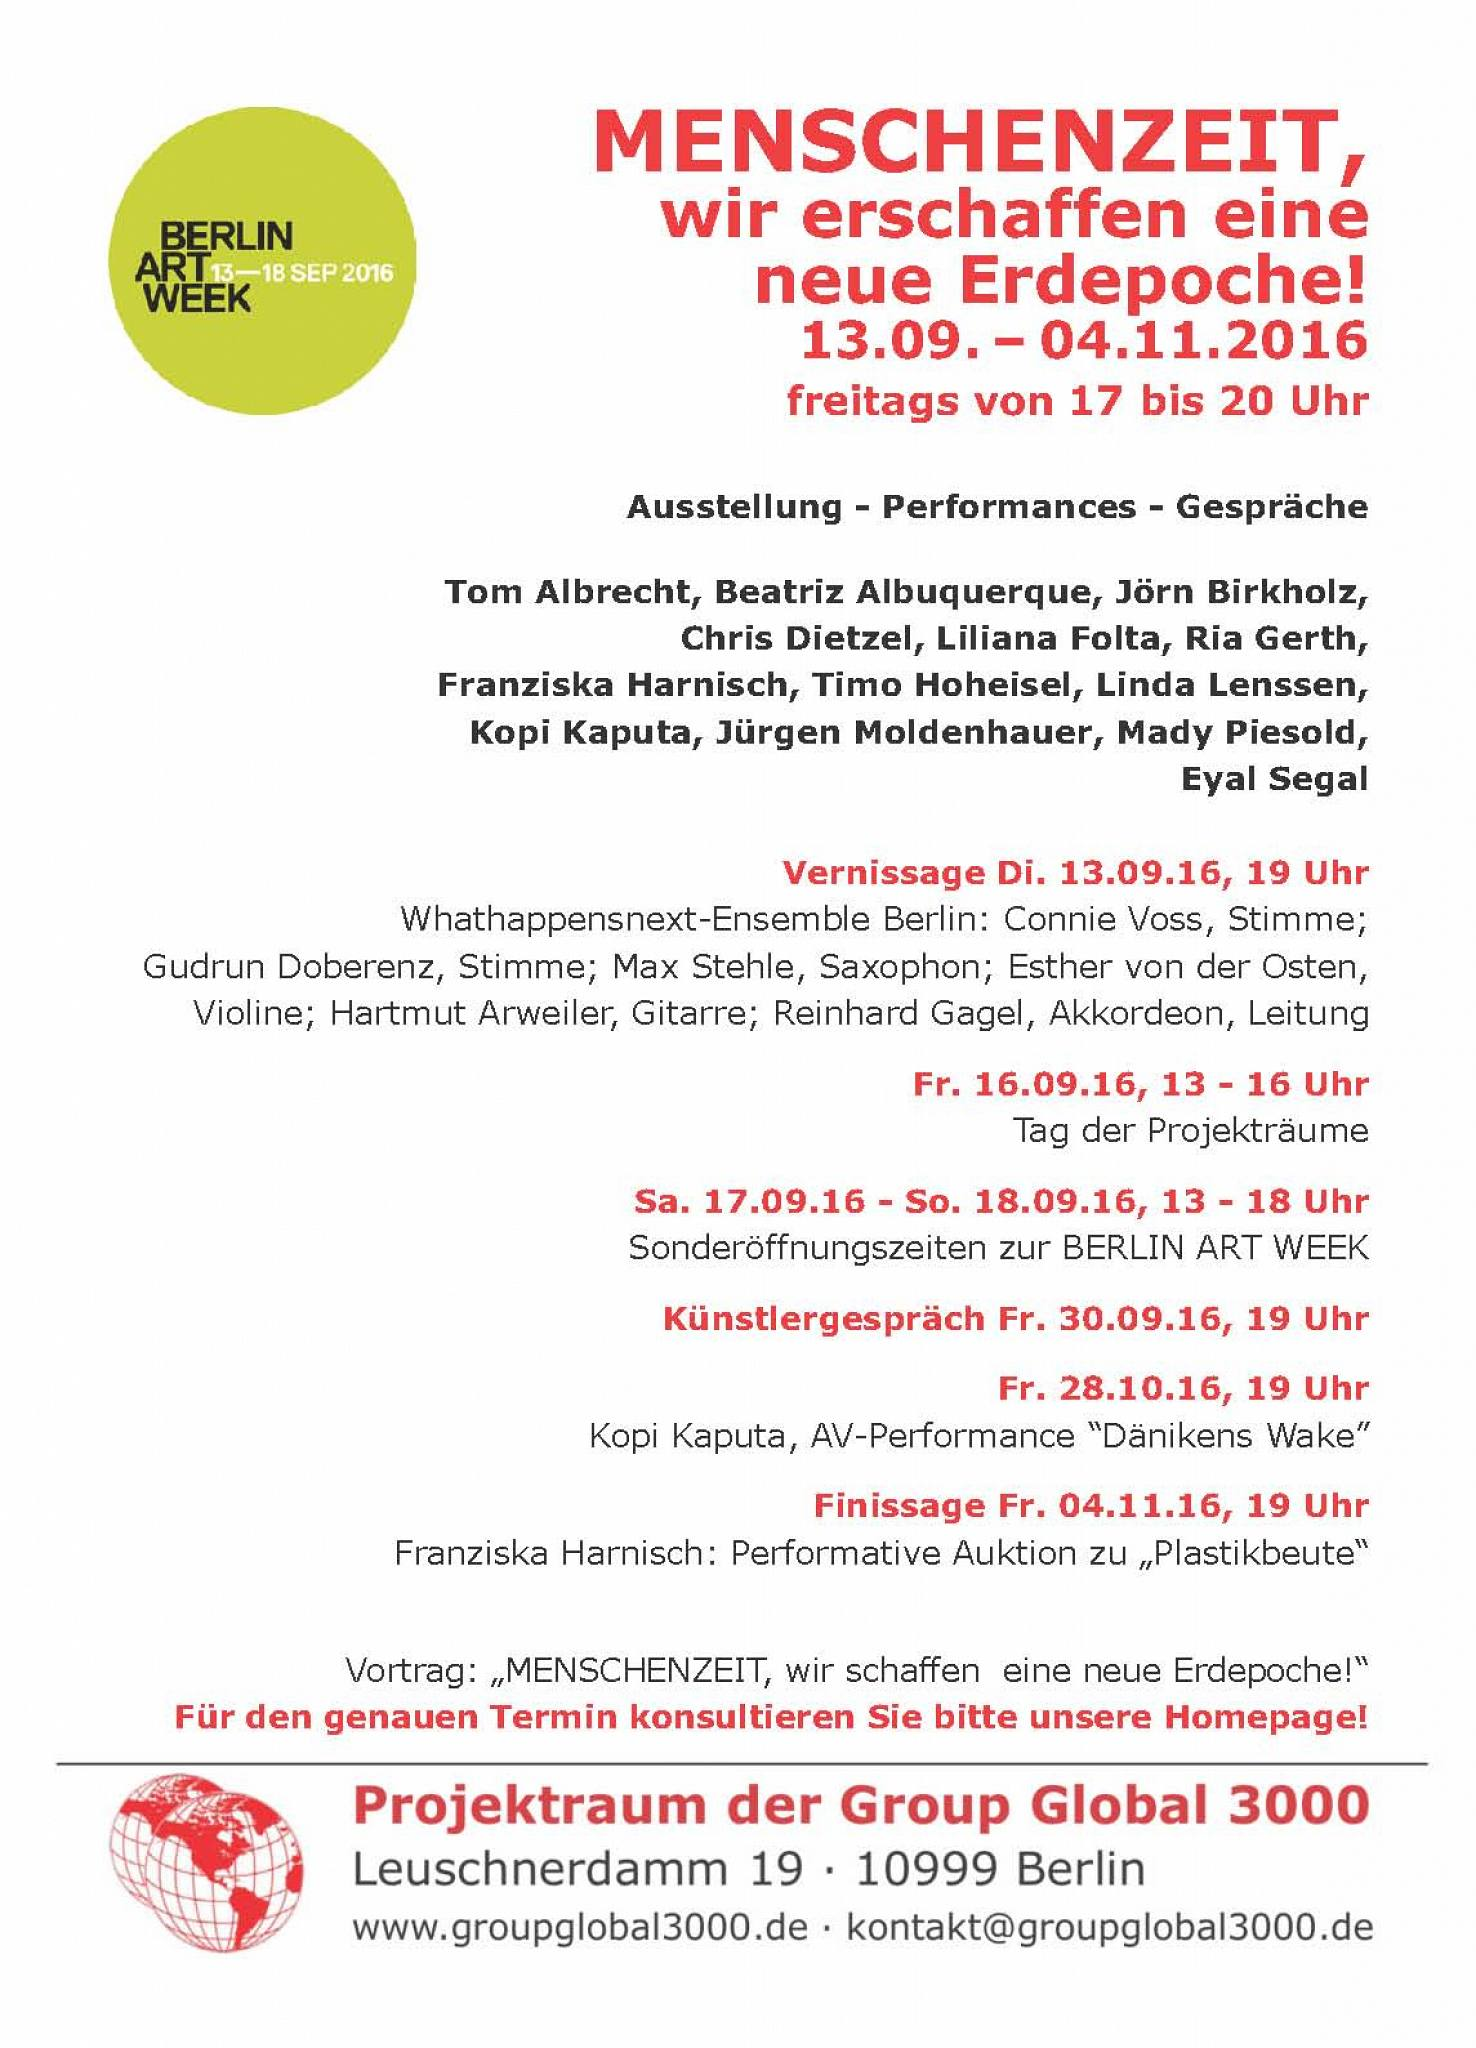 Group Global 3000 Exhibition: Berlin 2016 flyer